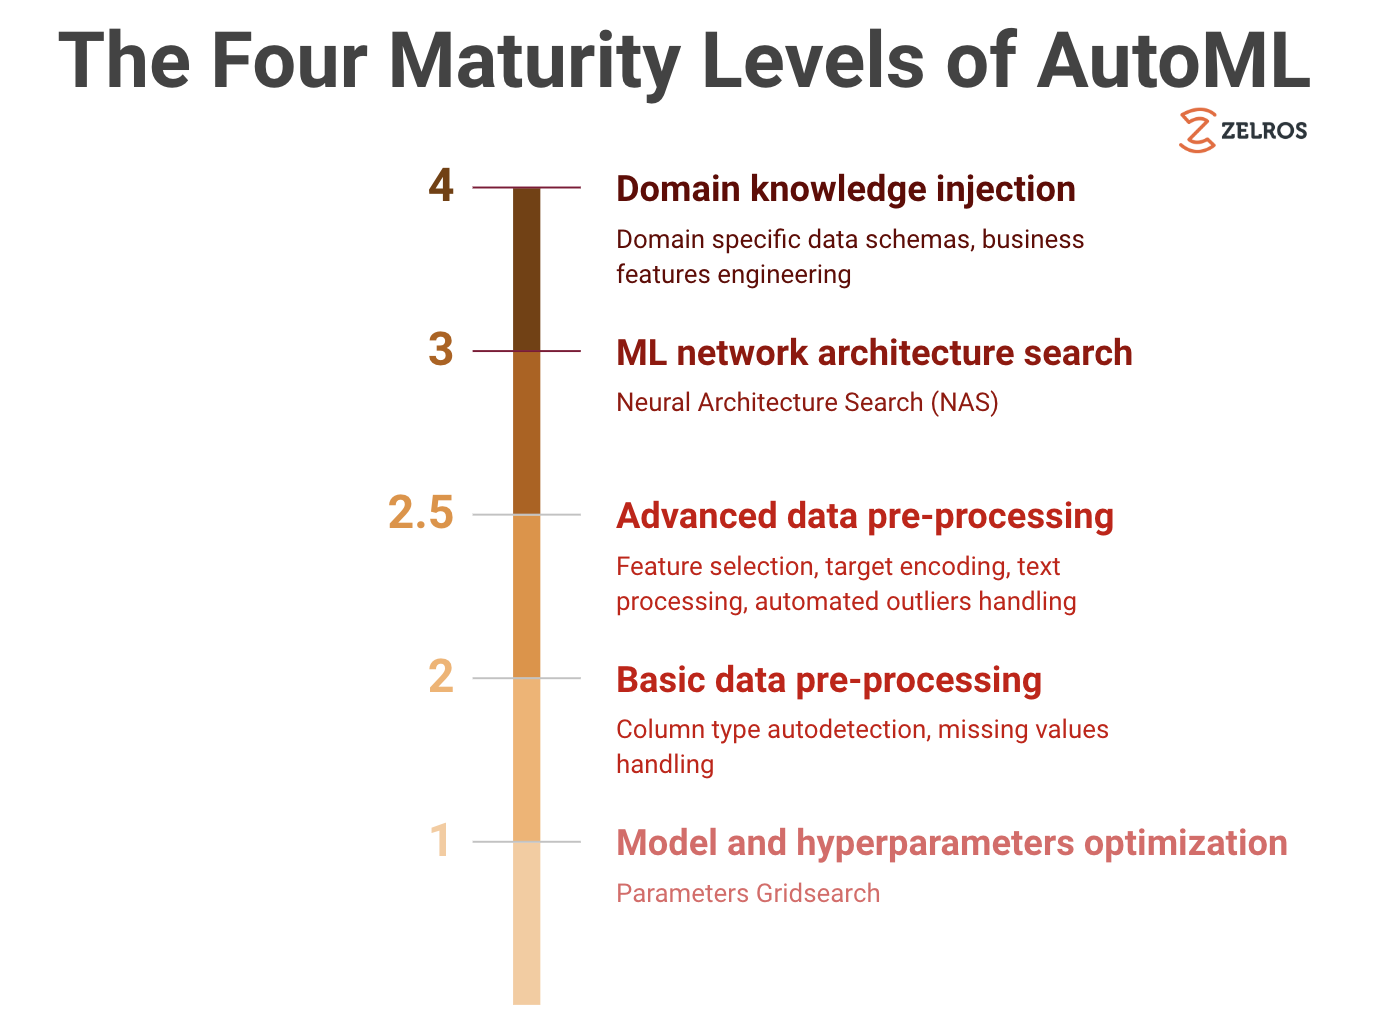 The Four Maturity Levels of Automated Machine Learning